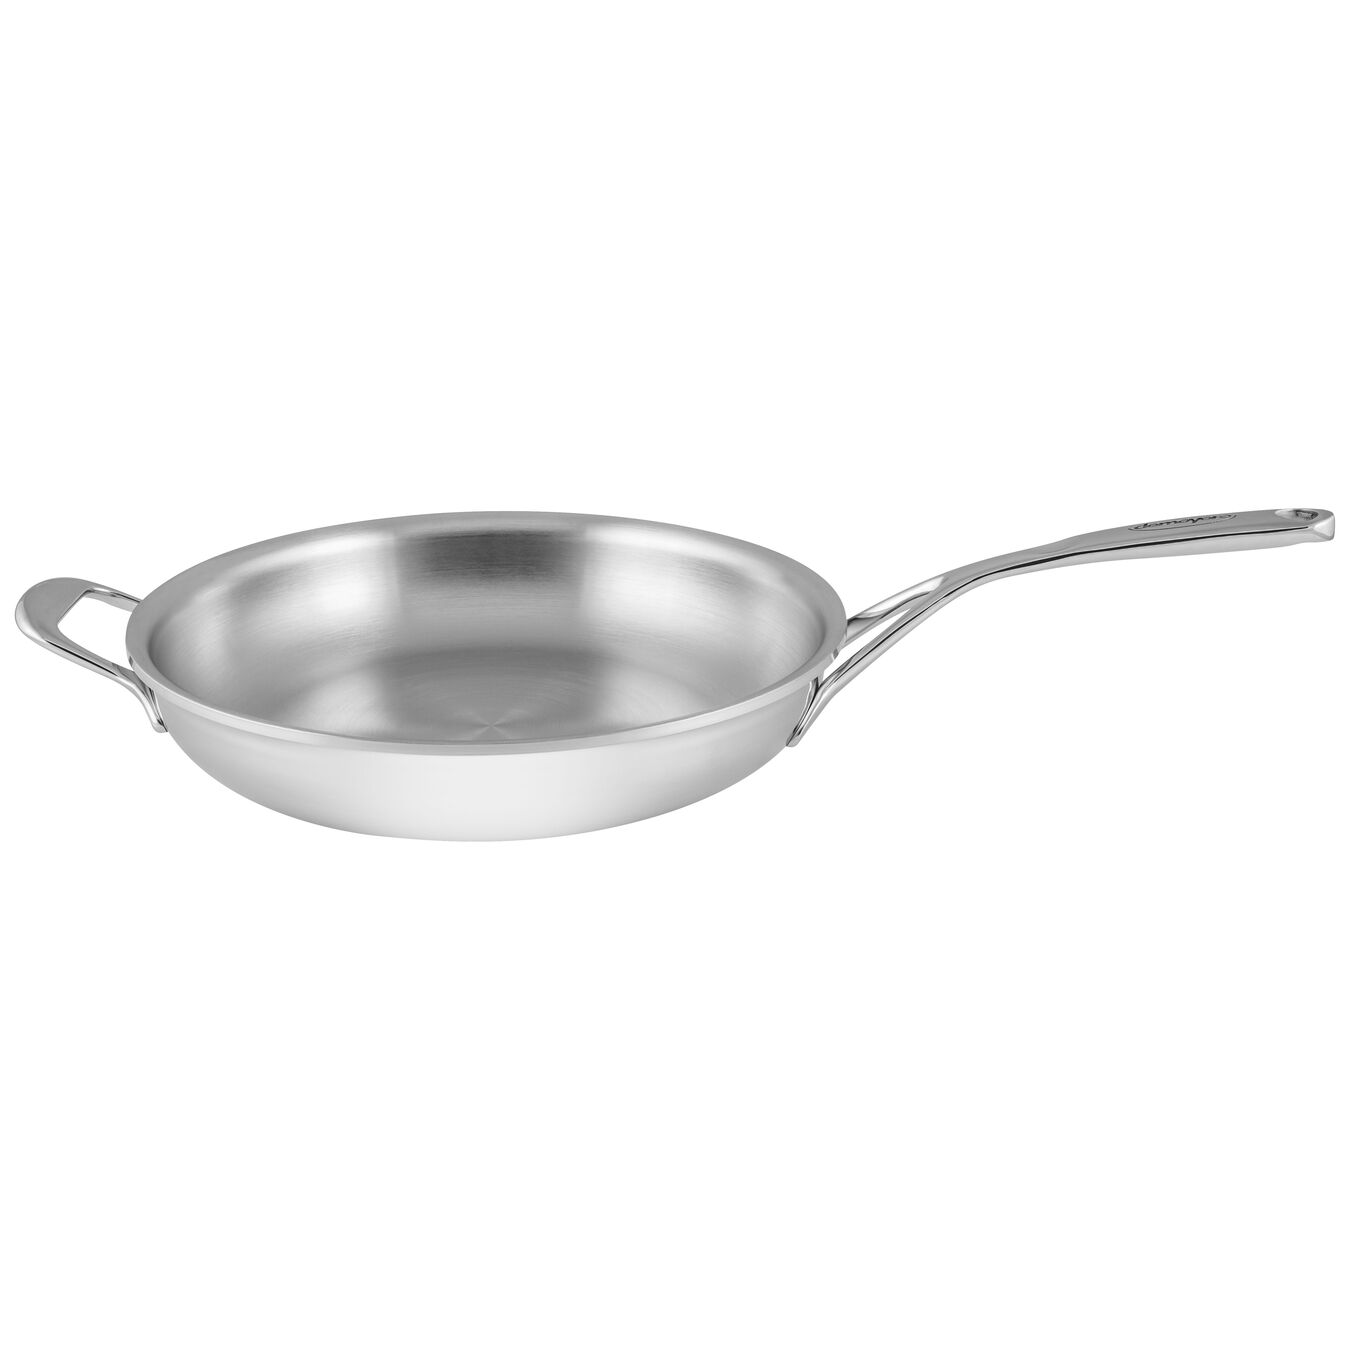 11-inch Stainless Steel Fry Pan with Helper Handle,,large 1